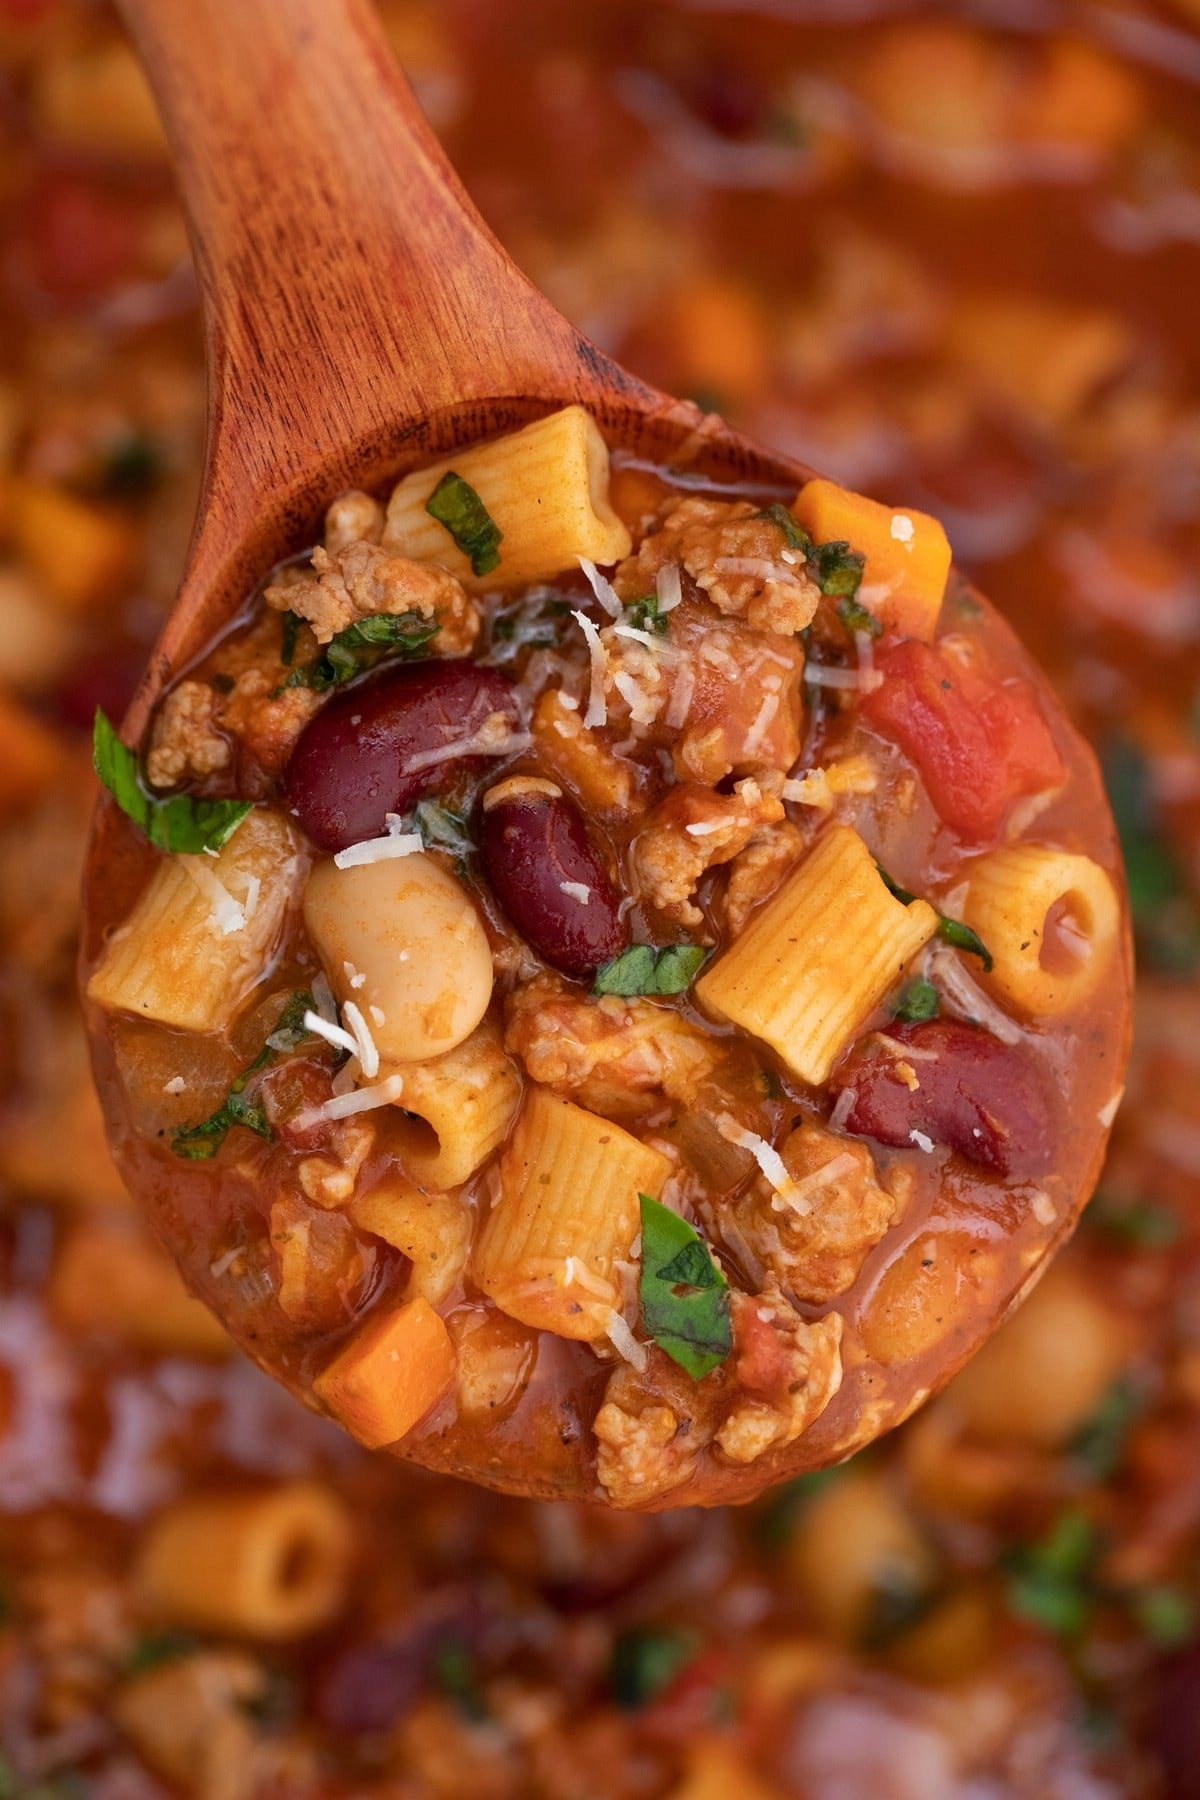 Wooden spoon filled with soup with beans and pasta